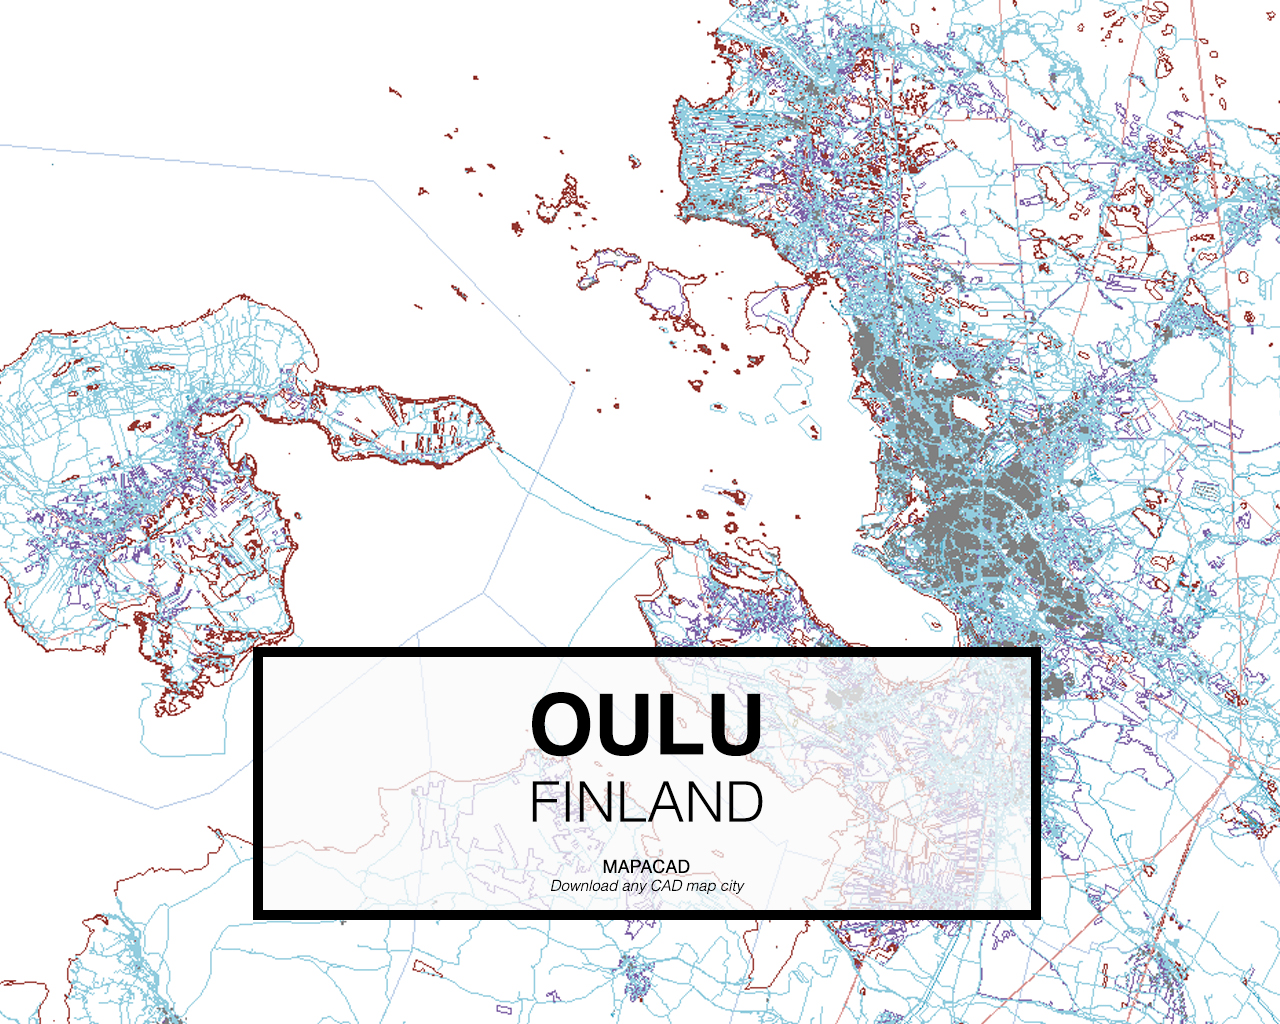 Download oulu dwg mapacad oulu finland 01 mapacad download map cad dwg gumiabroncs Gallery